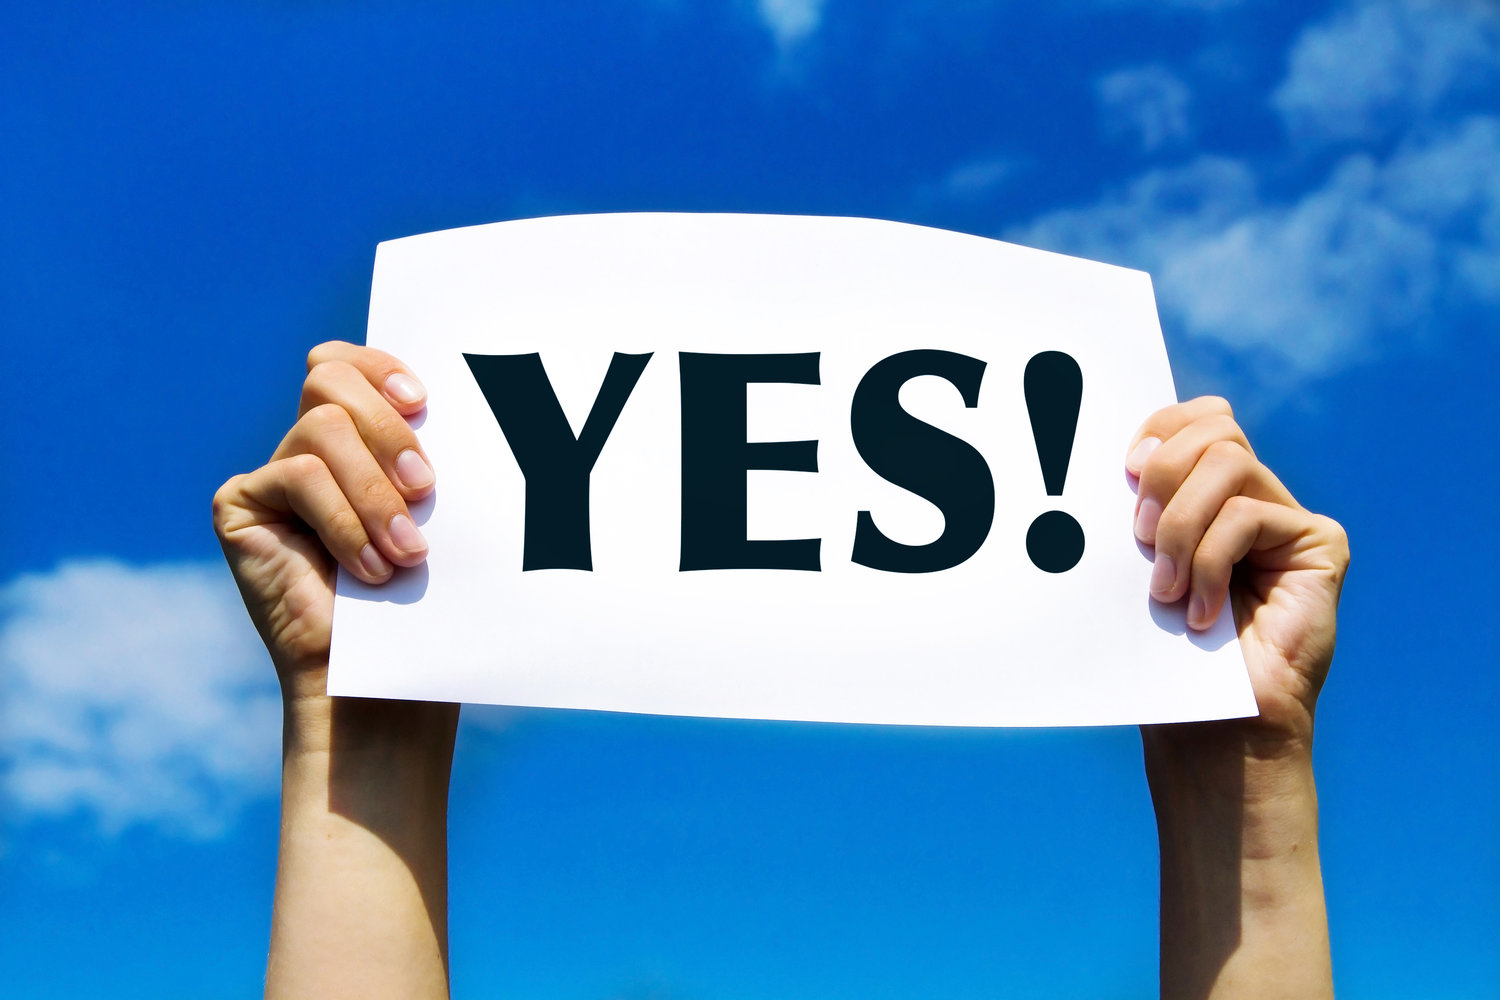 """Episode 159: The """"Yes"""" Game - Looking at a culture where news, opinions and often daily conversations can tend towards negativity, a positive outlook can seem miraculous. When looking at performing environments, however, performers are encouraged to embrace new challenges, ideas and forms of expression. How does this concept manifest in the improv exercise """"The Yes Game""""?"""